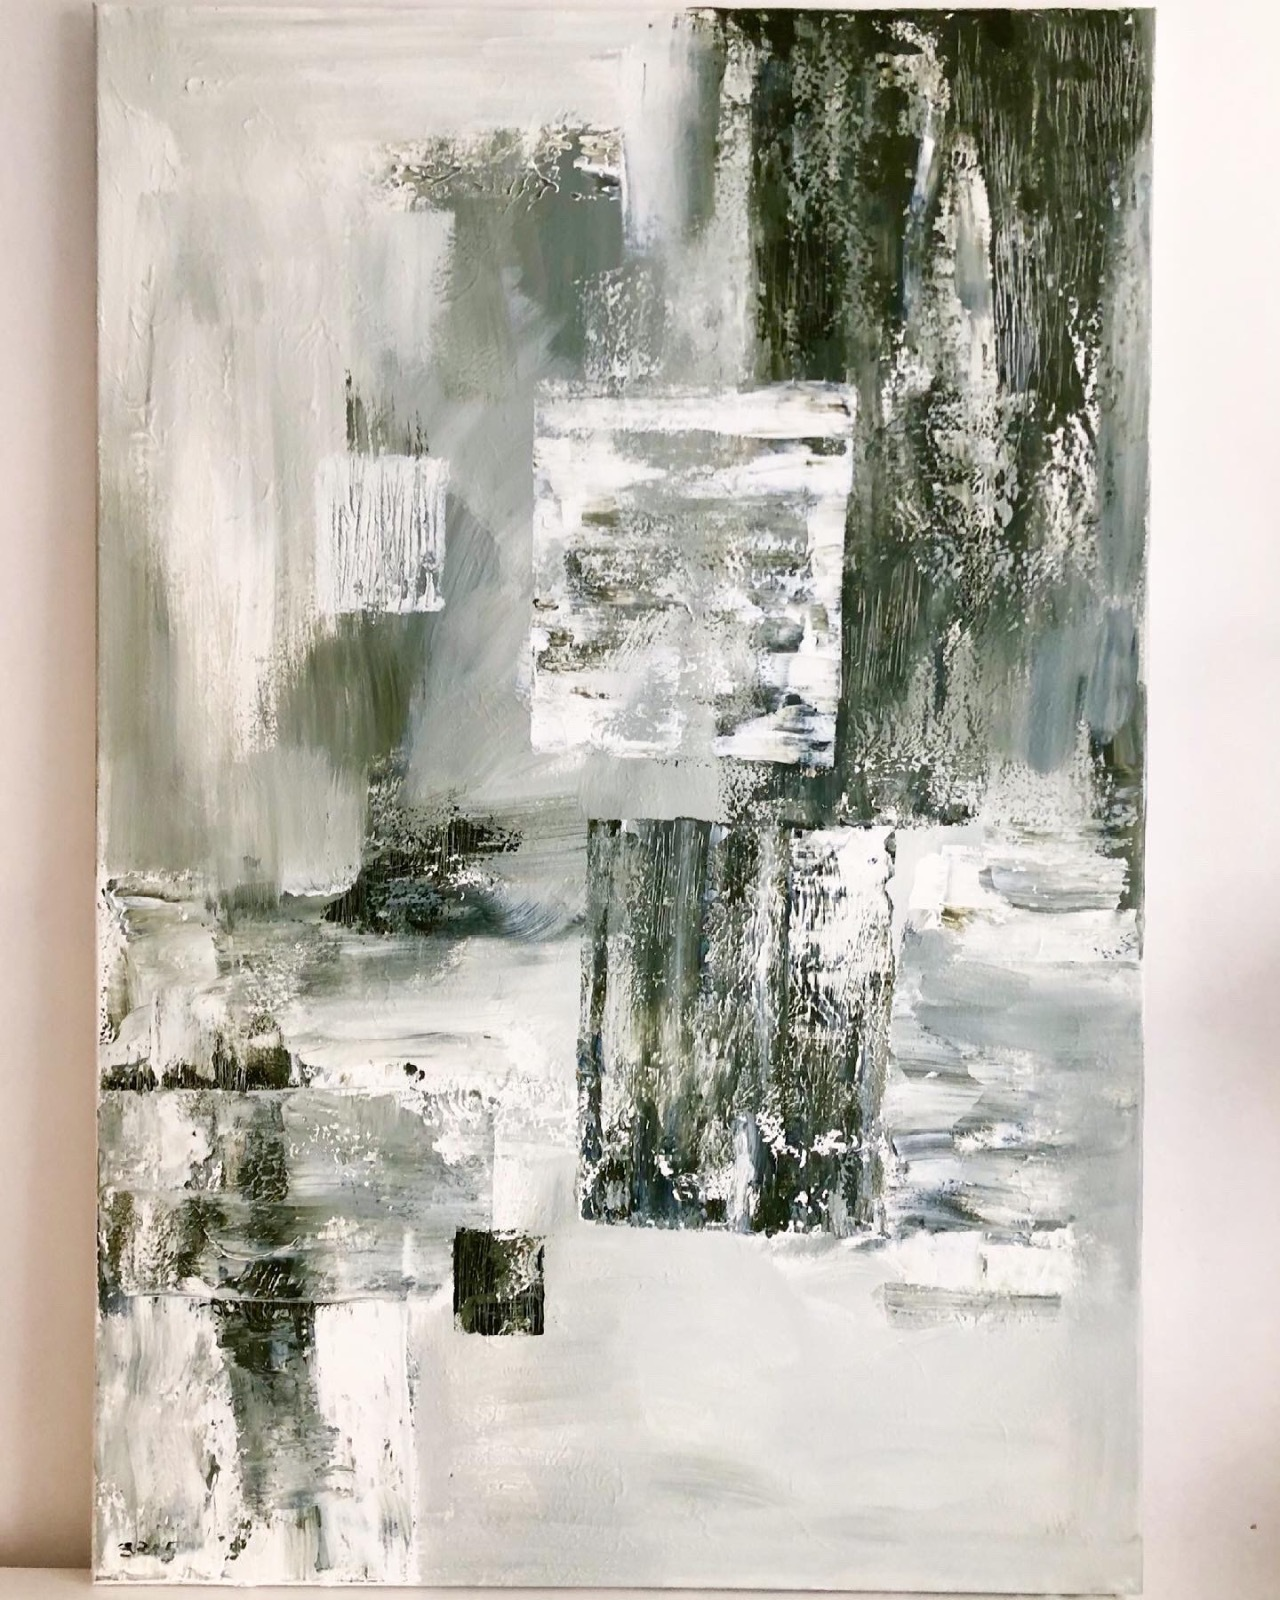 'Searching for Calm' Large abstract acrylic painting